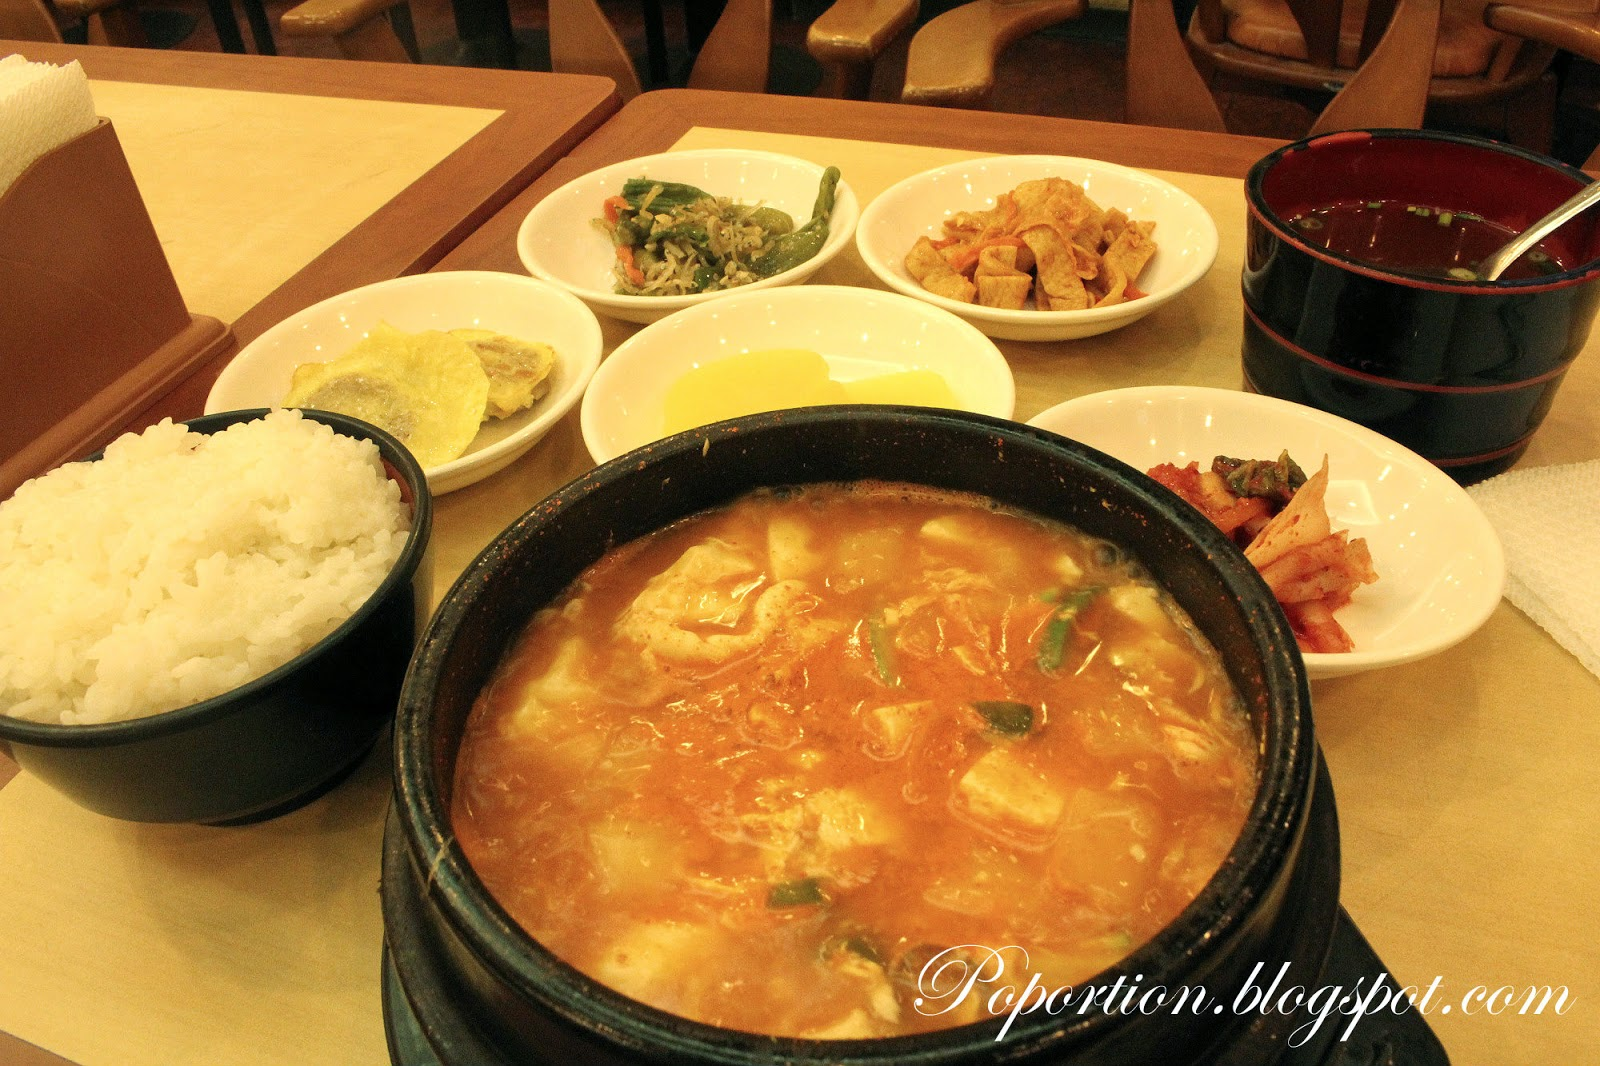 kimchi soup rice side dish authentic korea food what to eat in korea